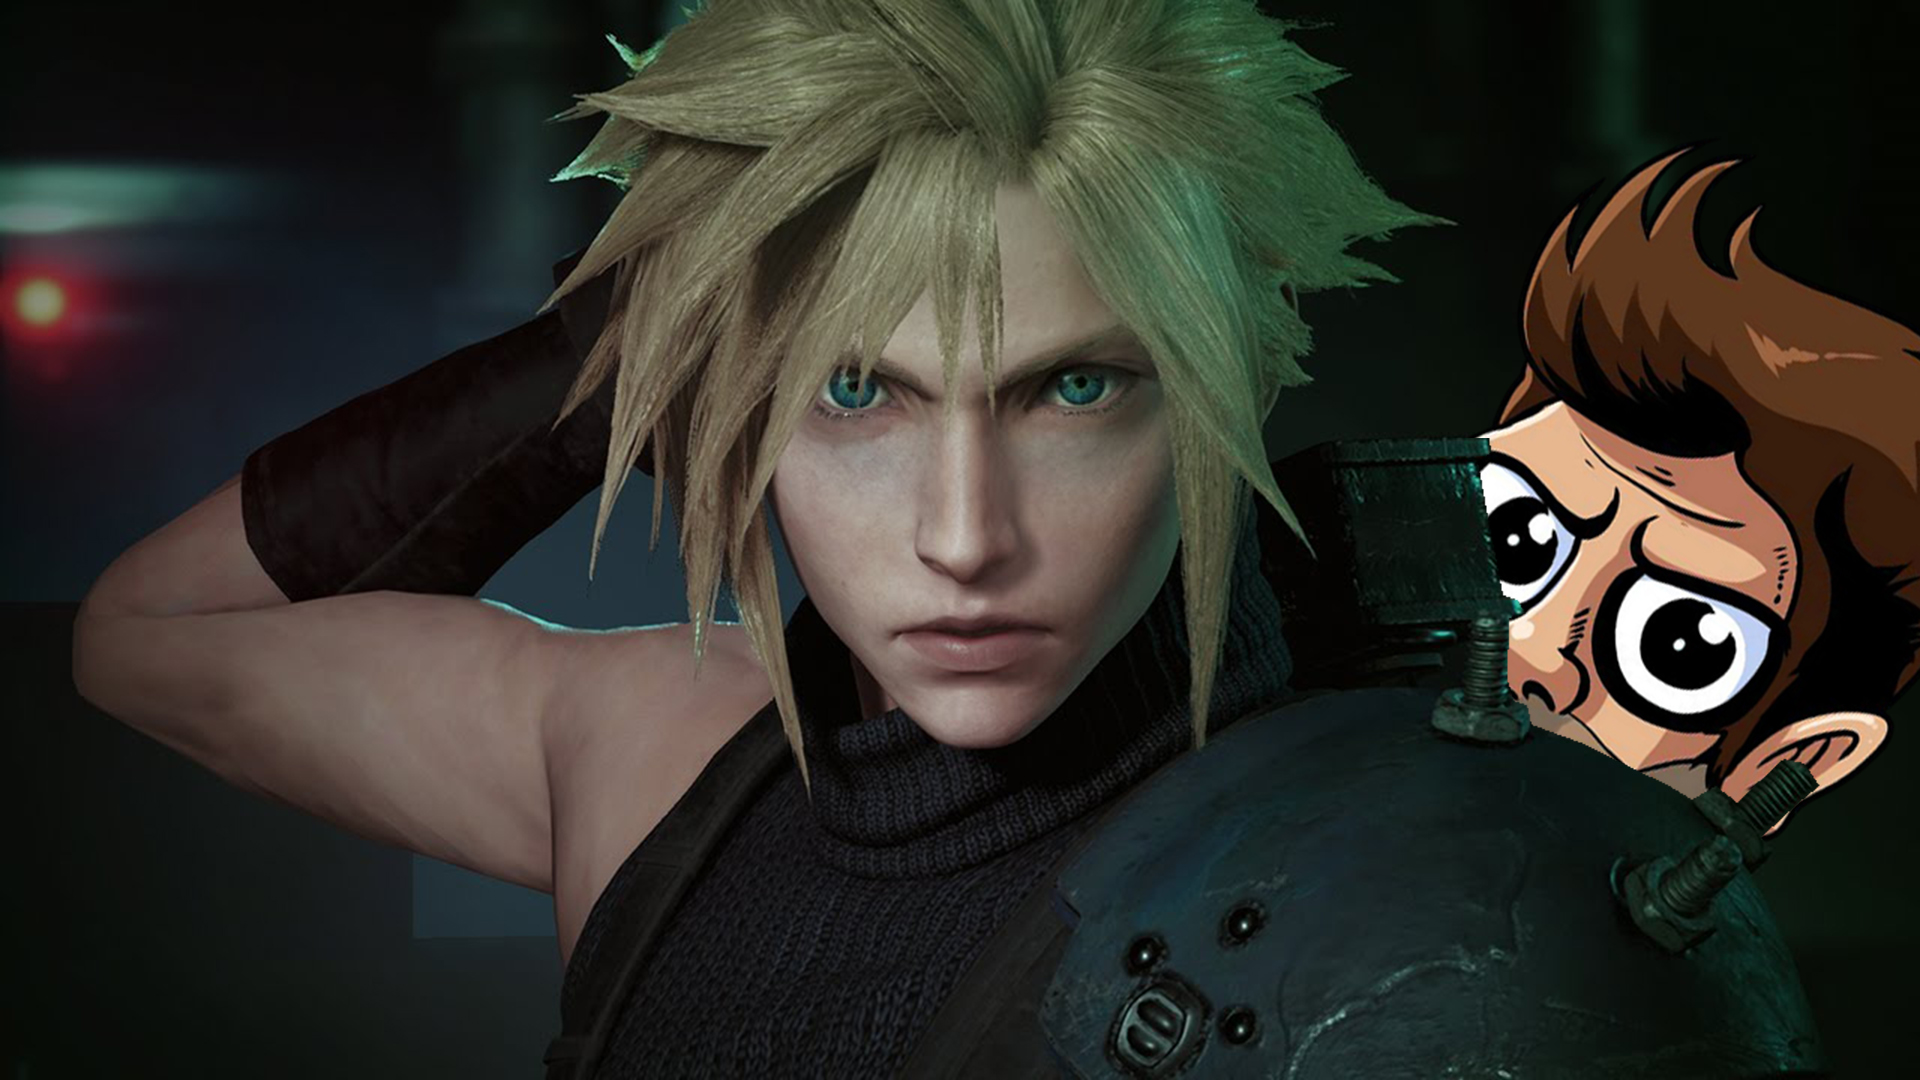 In today's episode of Pregame Discharge, Final Fantasy VII Remake got a new trailer and might release this decade! screenshot